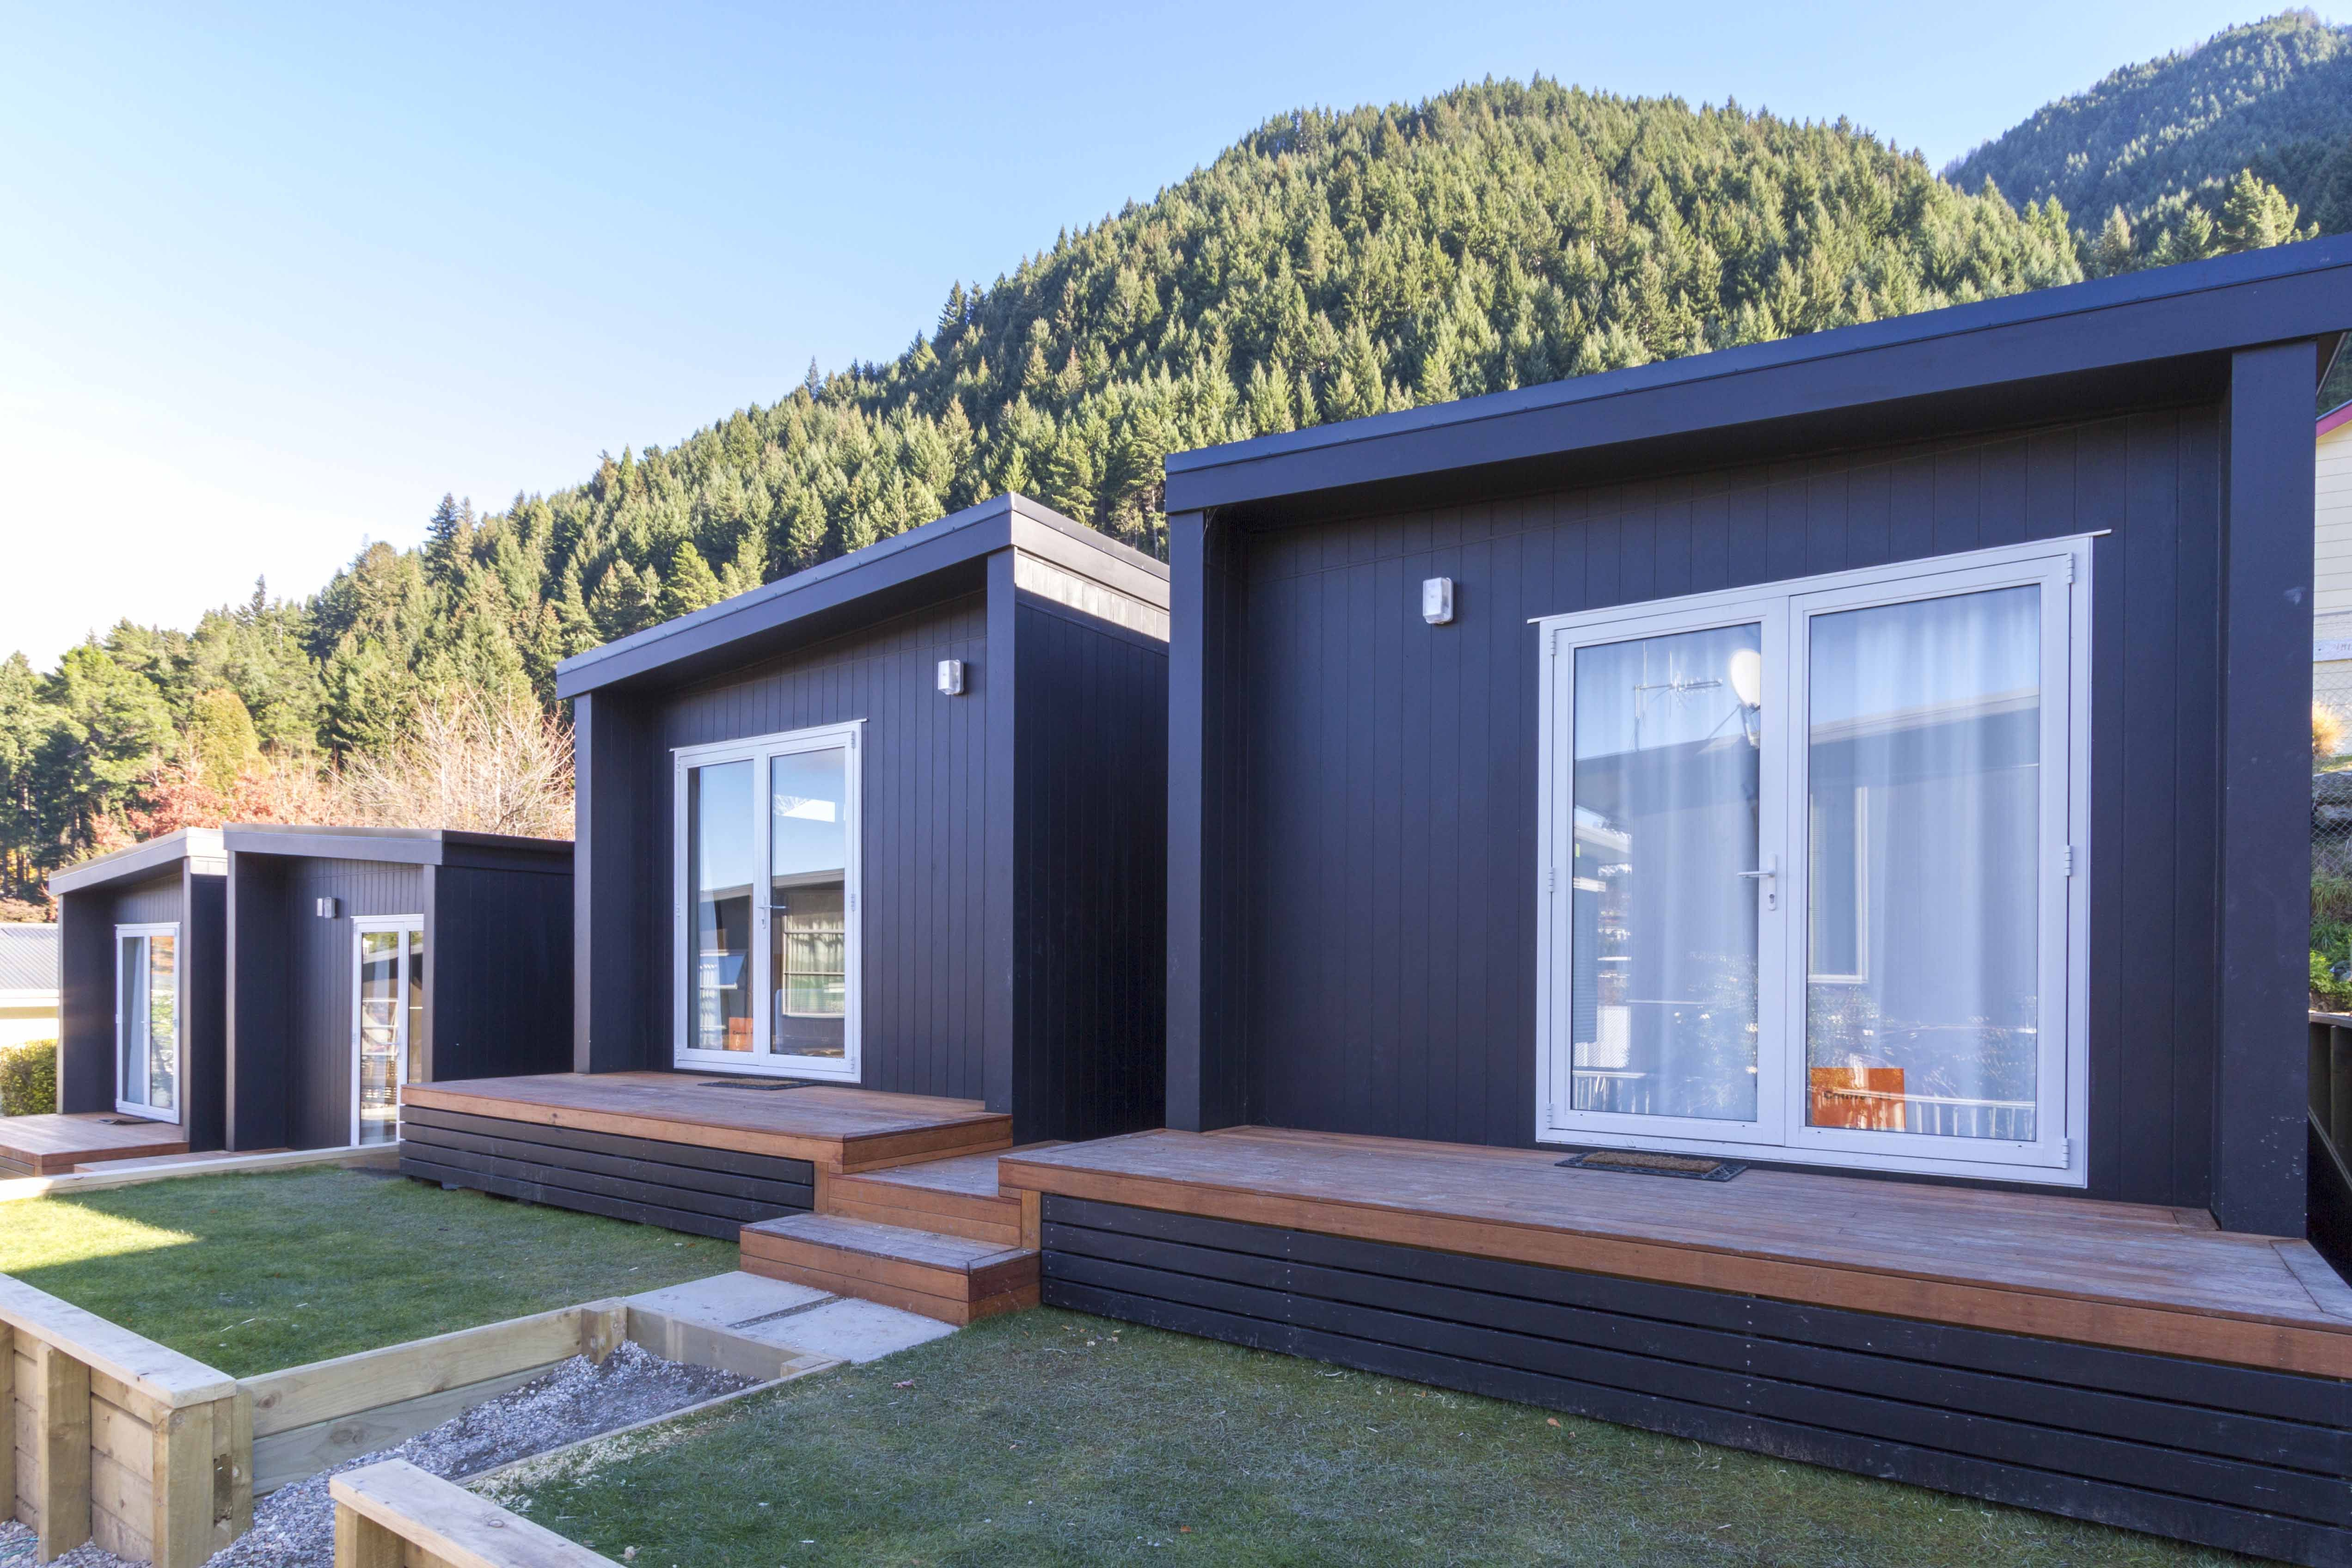 Beautifully Compact 1 Bedroom Cabin Designed With Convenience In Mind Whether Used As A Tourist Cabin Granny Prefabricated Houses Cabin Design Prefab Homes